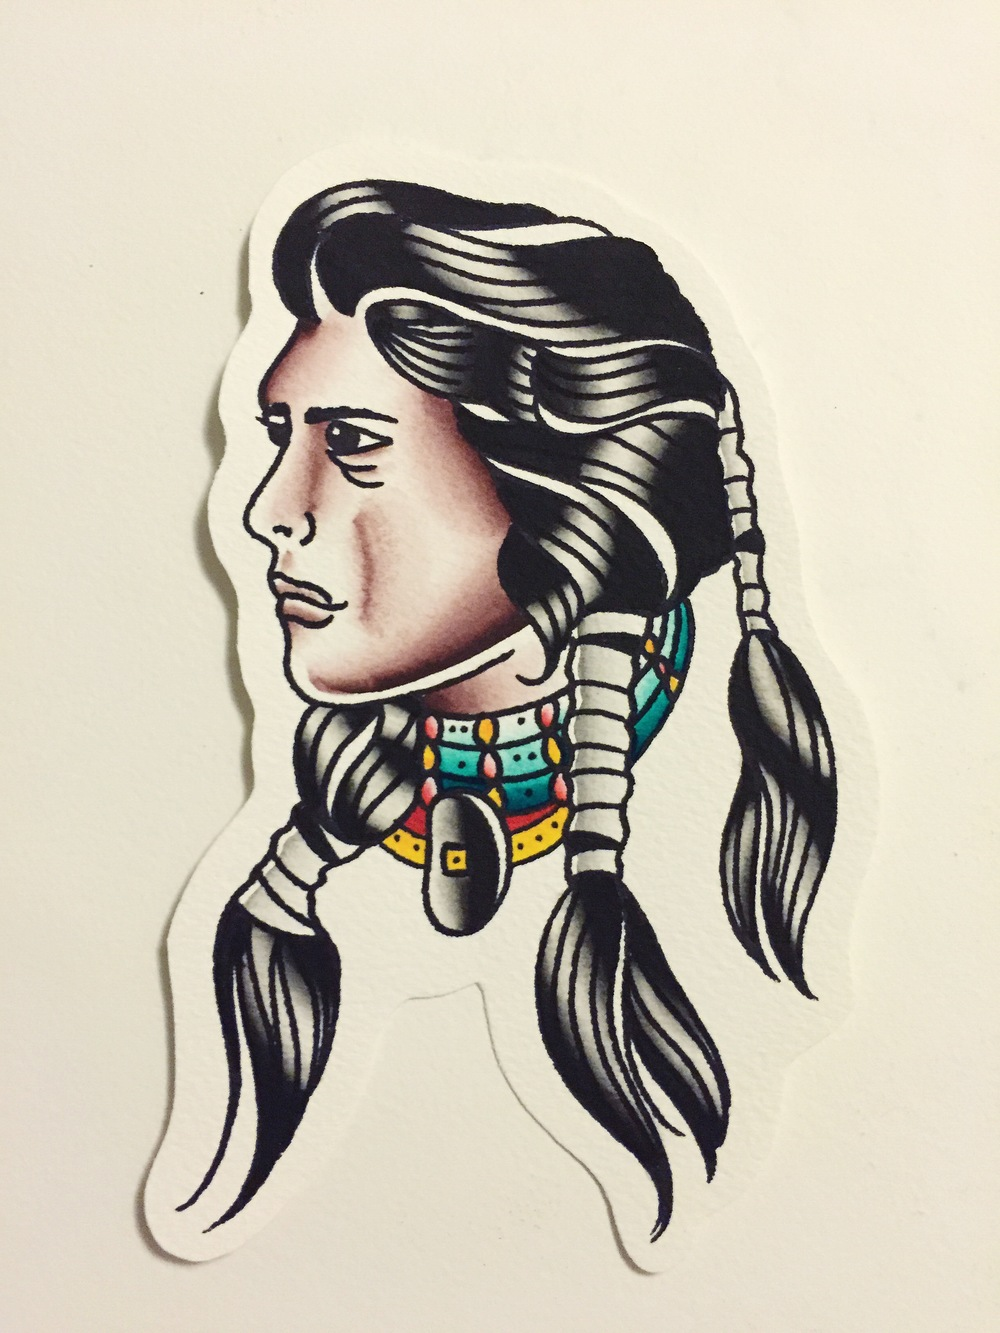 NATIVE AMERICAN(painting comes with tattoo)